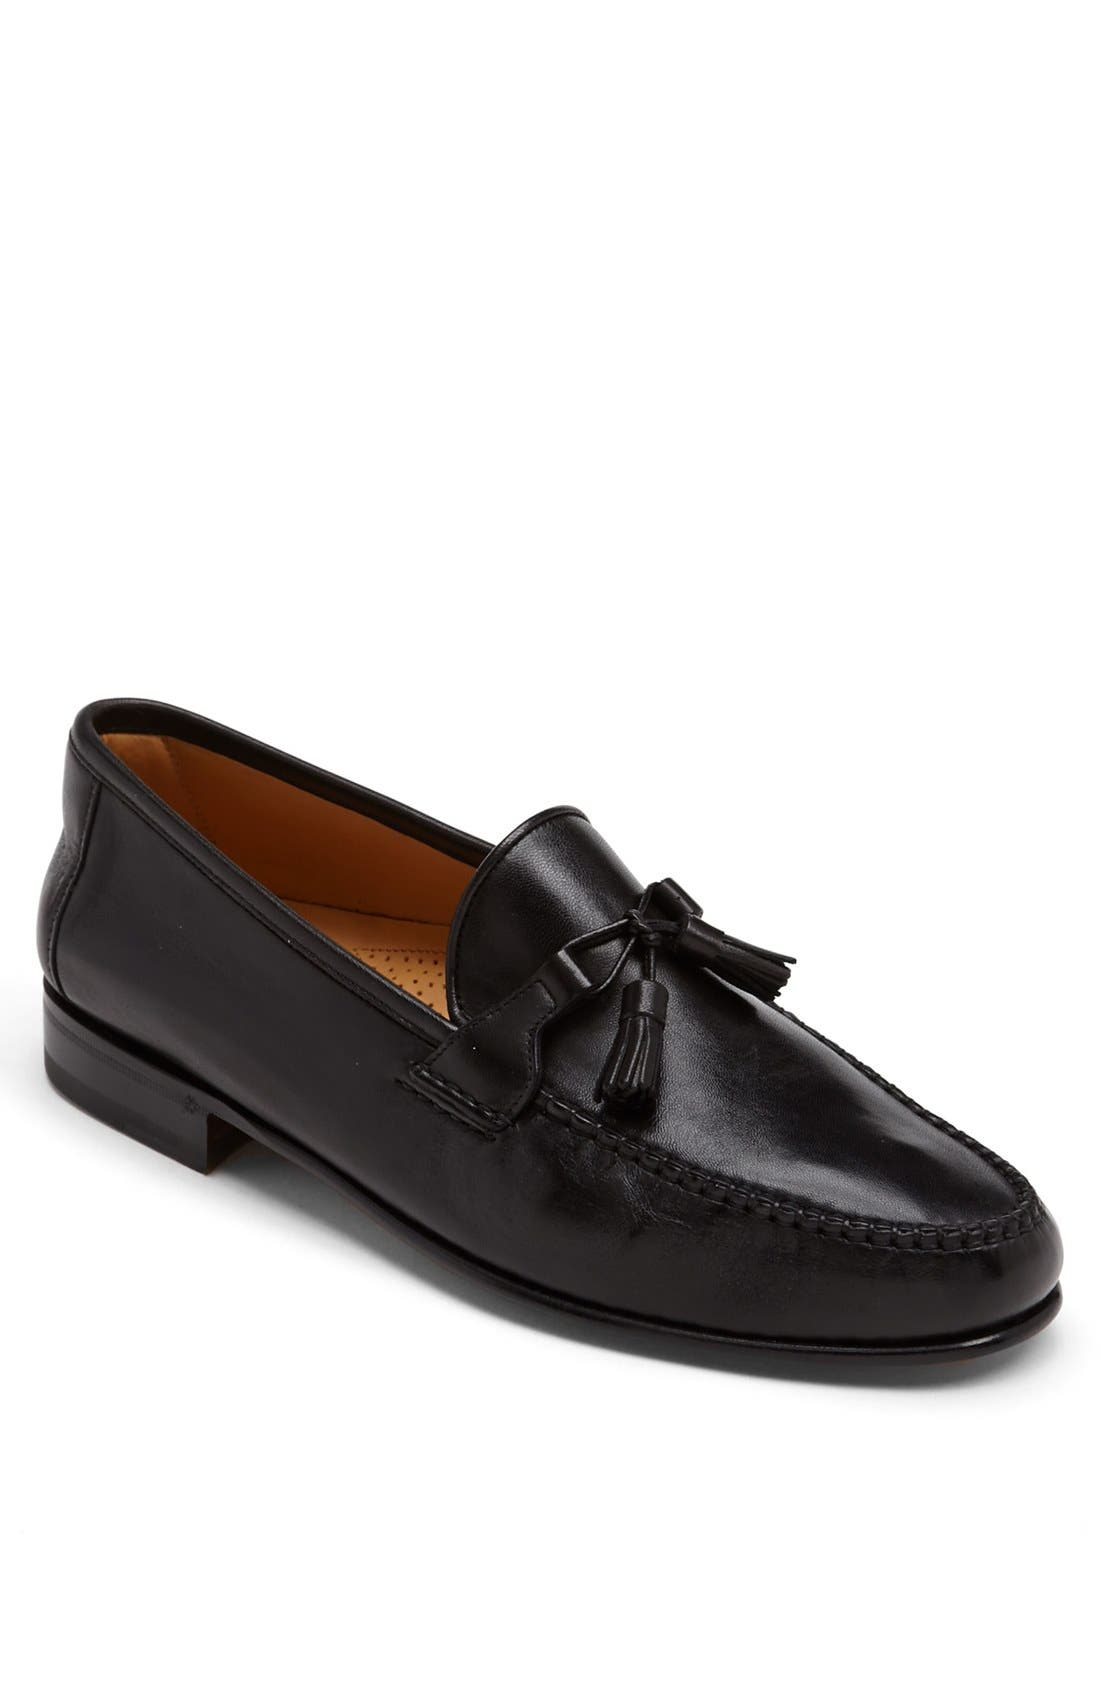 'Urbino' Tassel Loafer,                             Main thumbnail 1, color,                             Black